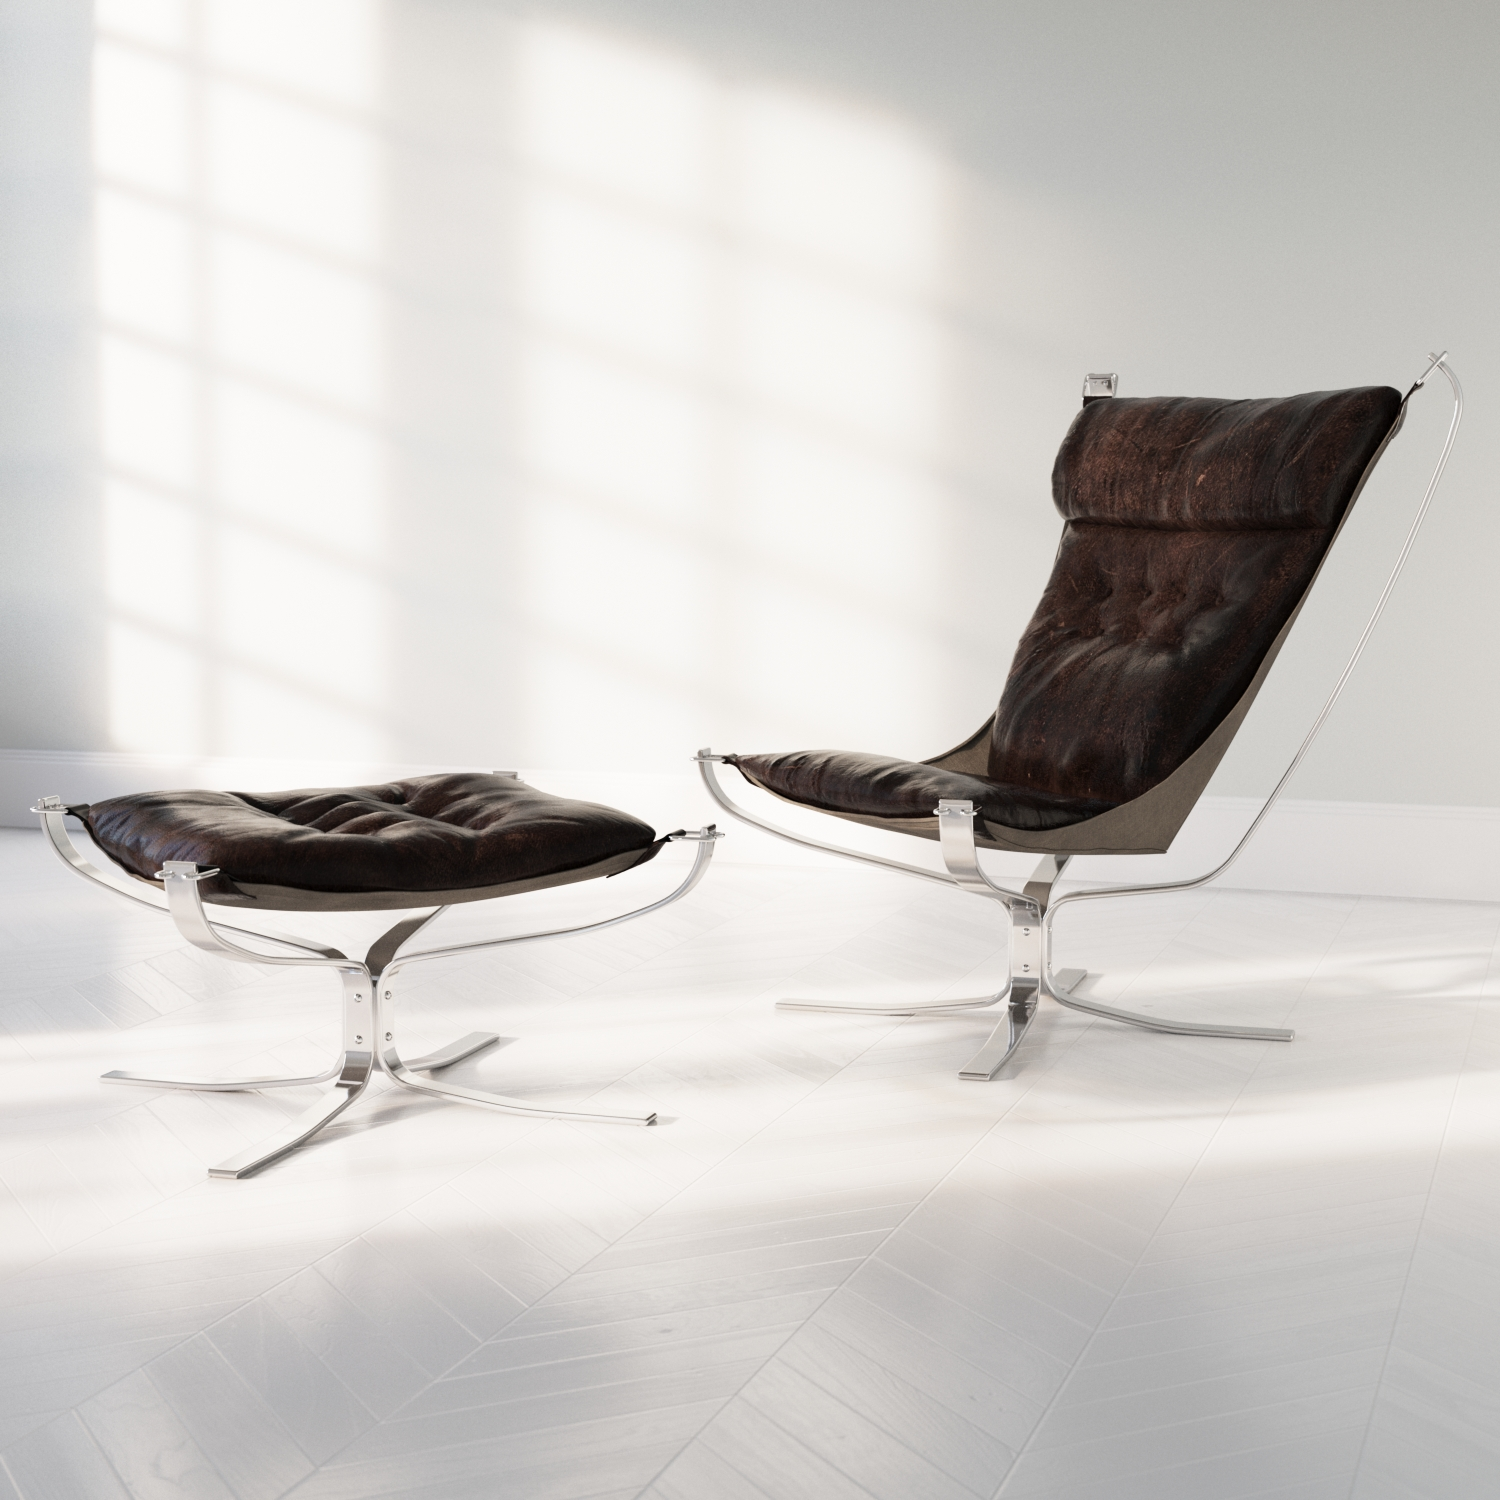 Falcon Chair Sigurd Ressell Falcon Chair Peter Guthrie